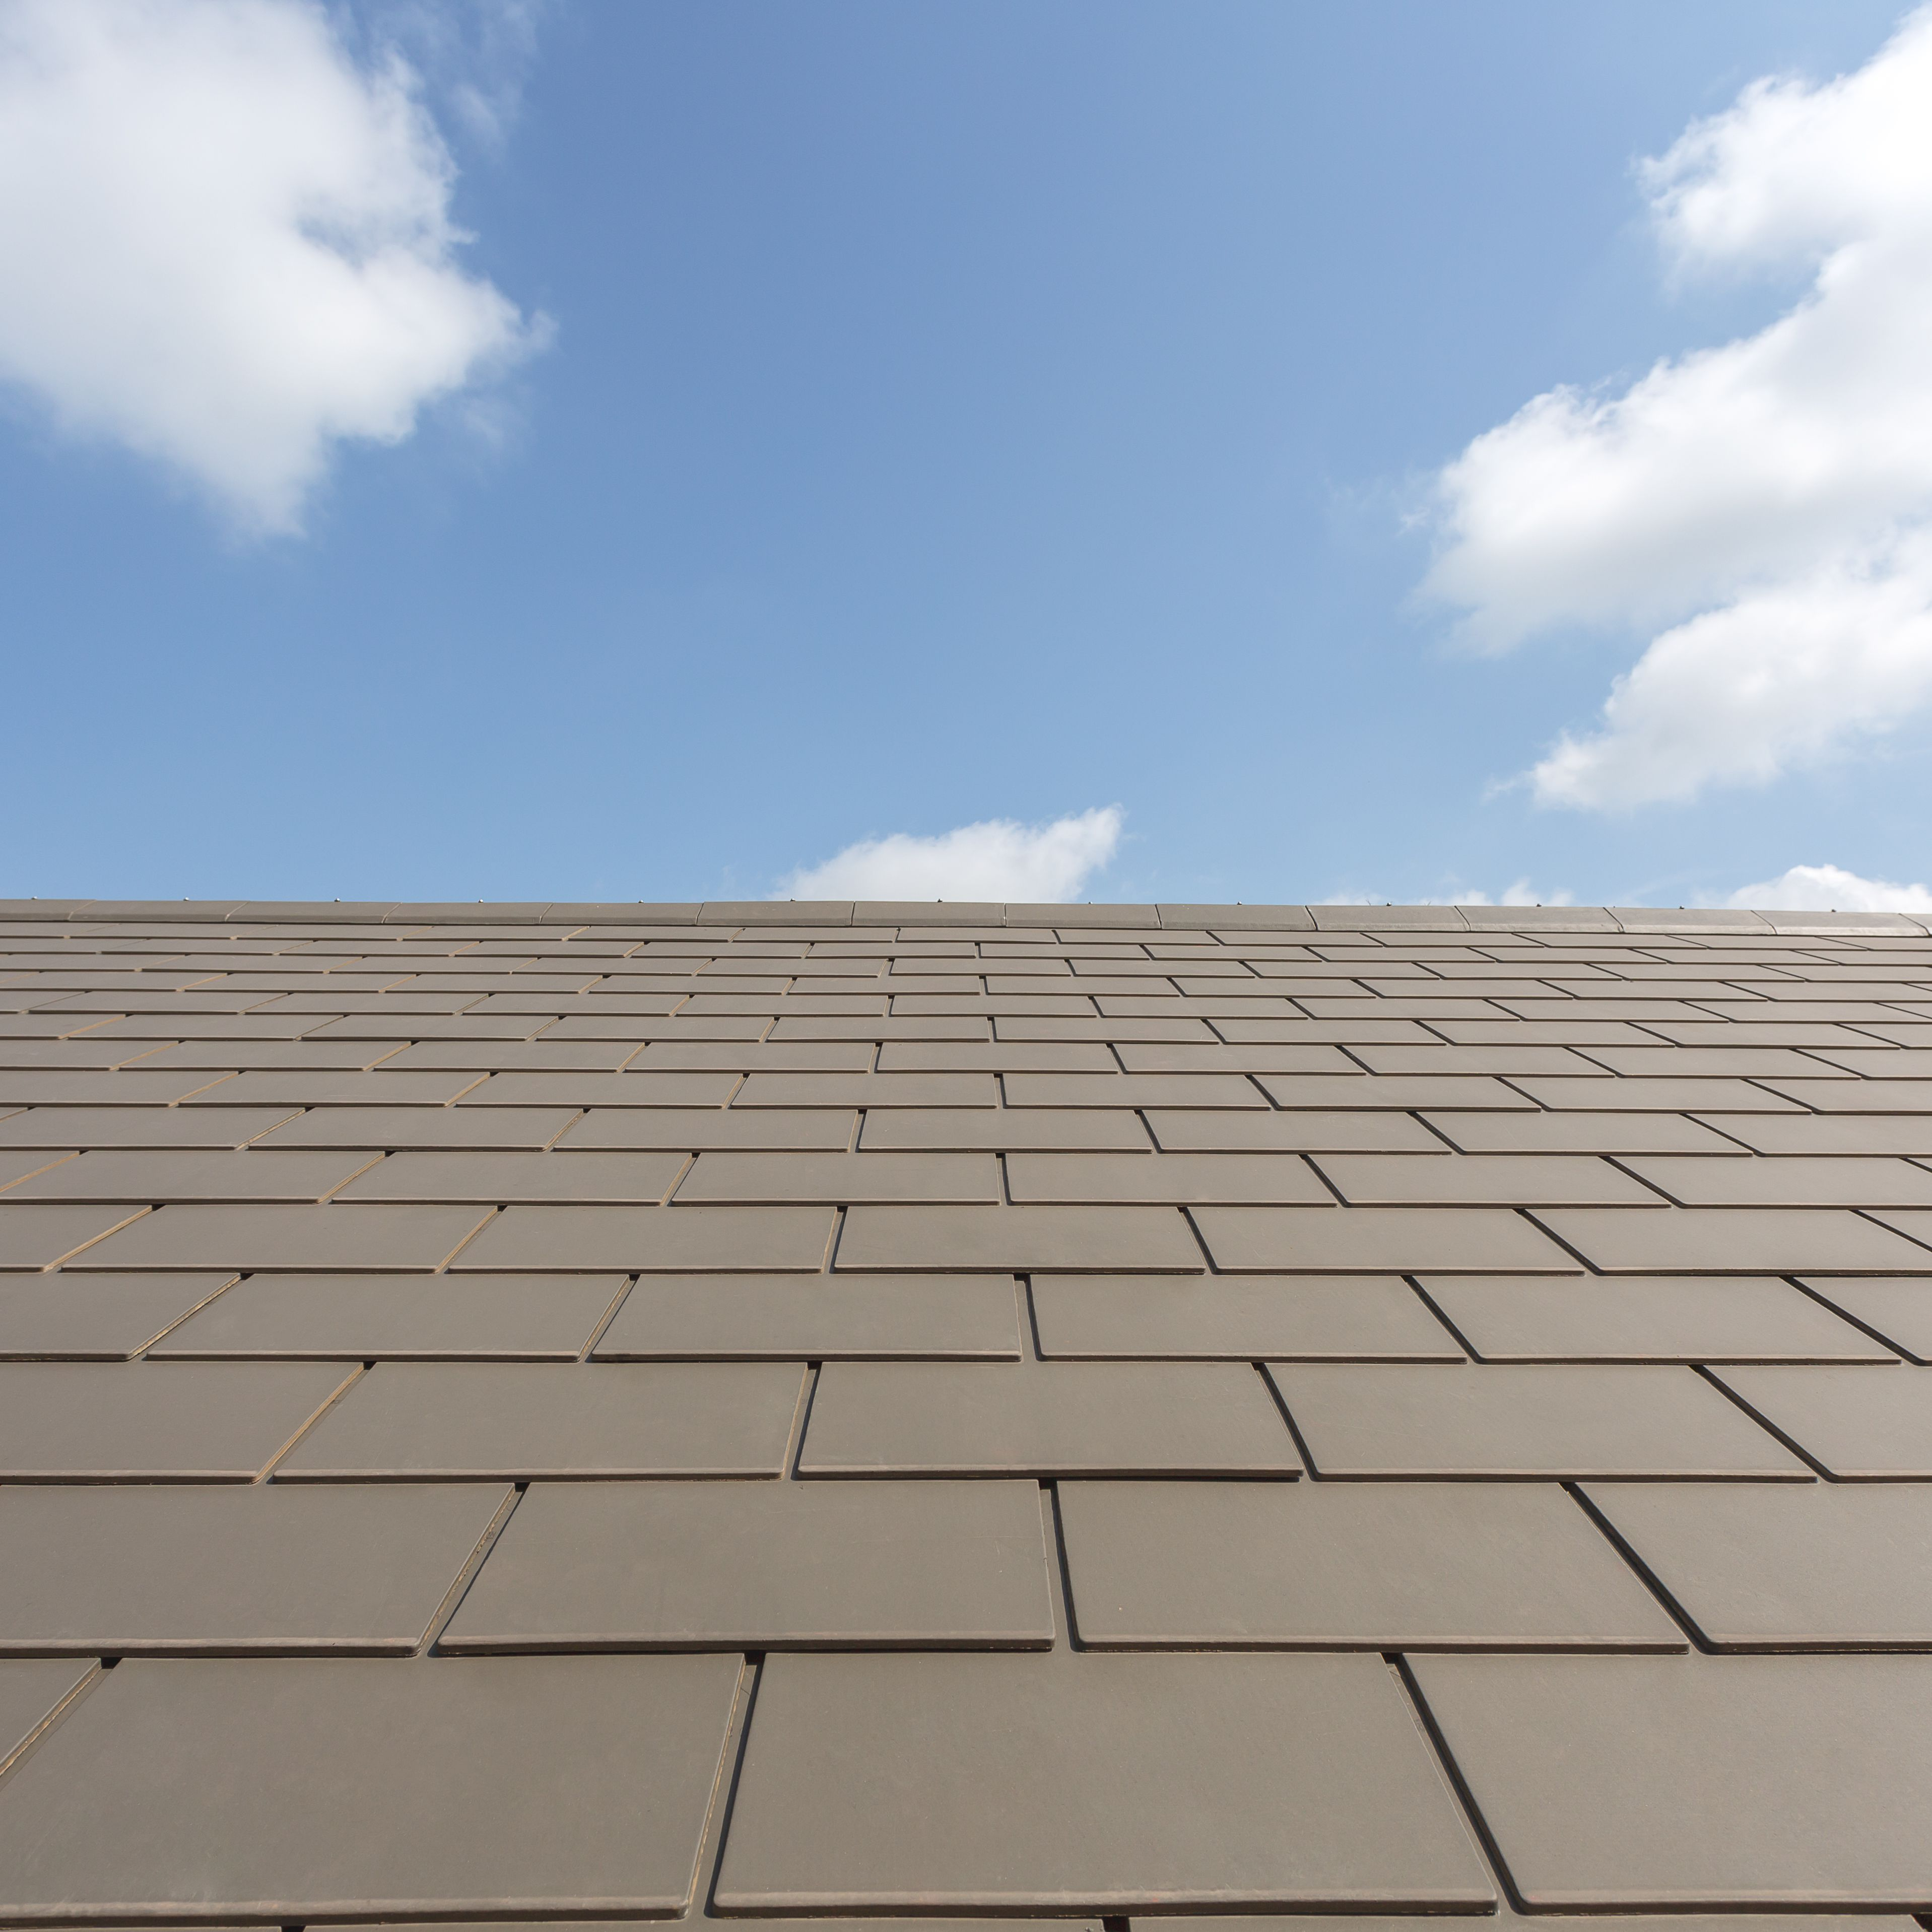 The 5 Roofing Alternatives You May Not Have Considered